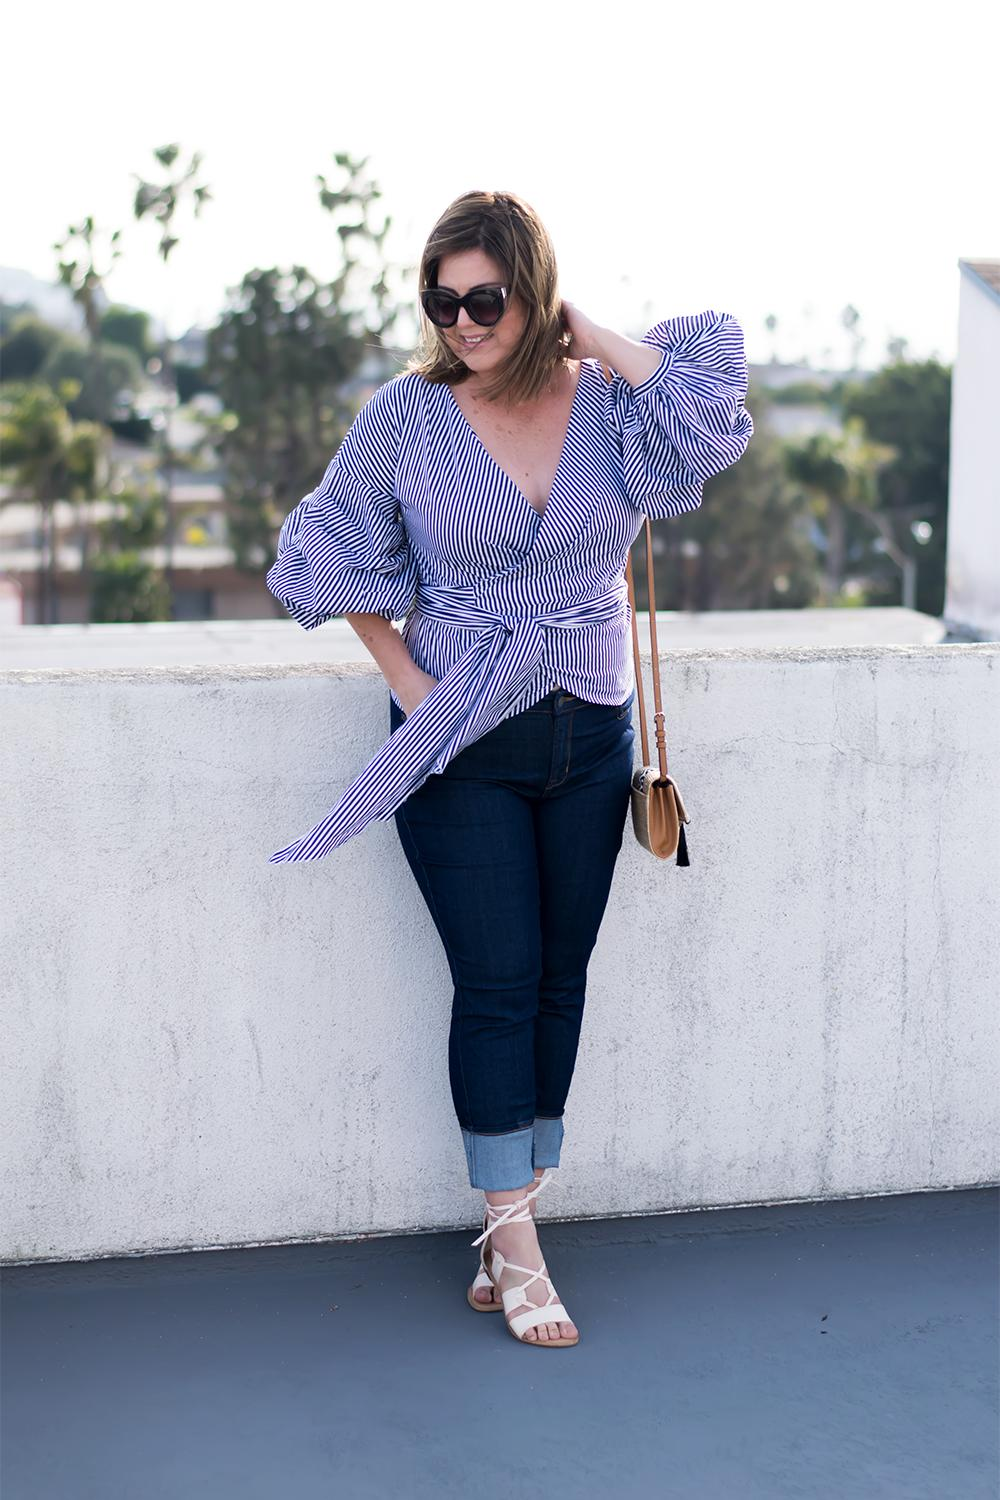 Must Have Statement Tops for Spring Under $60